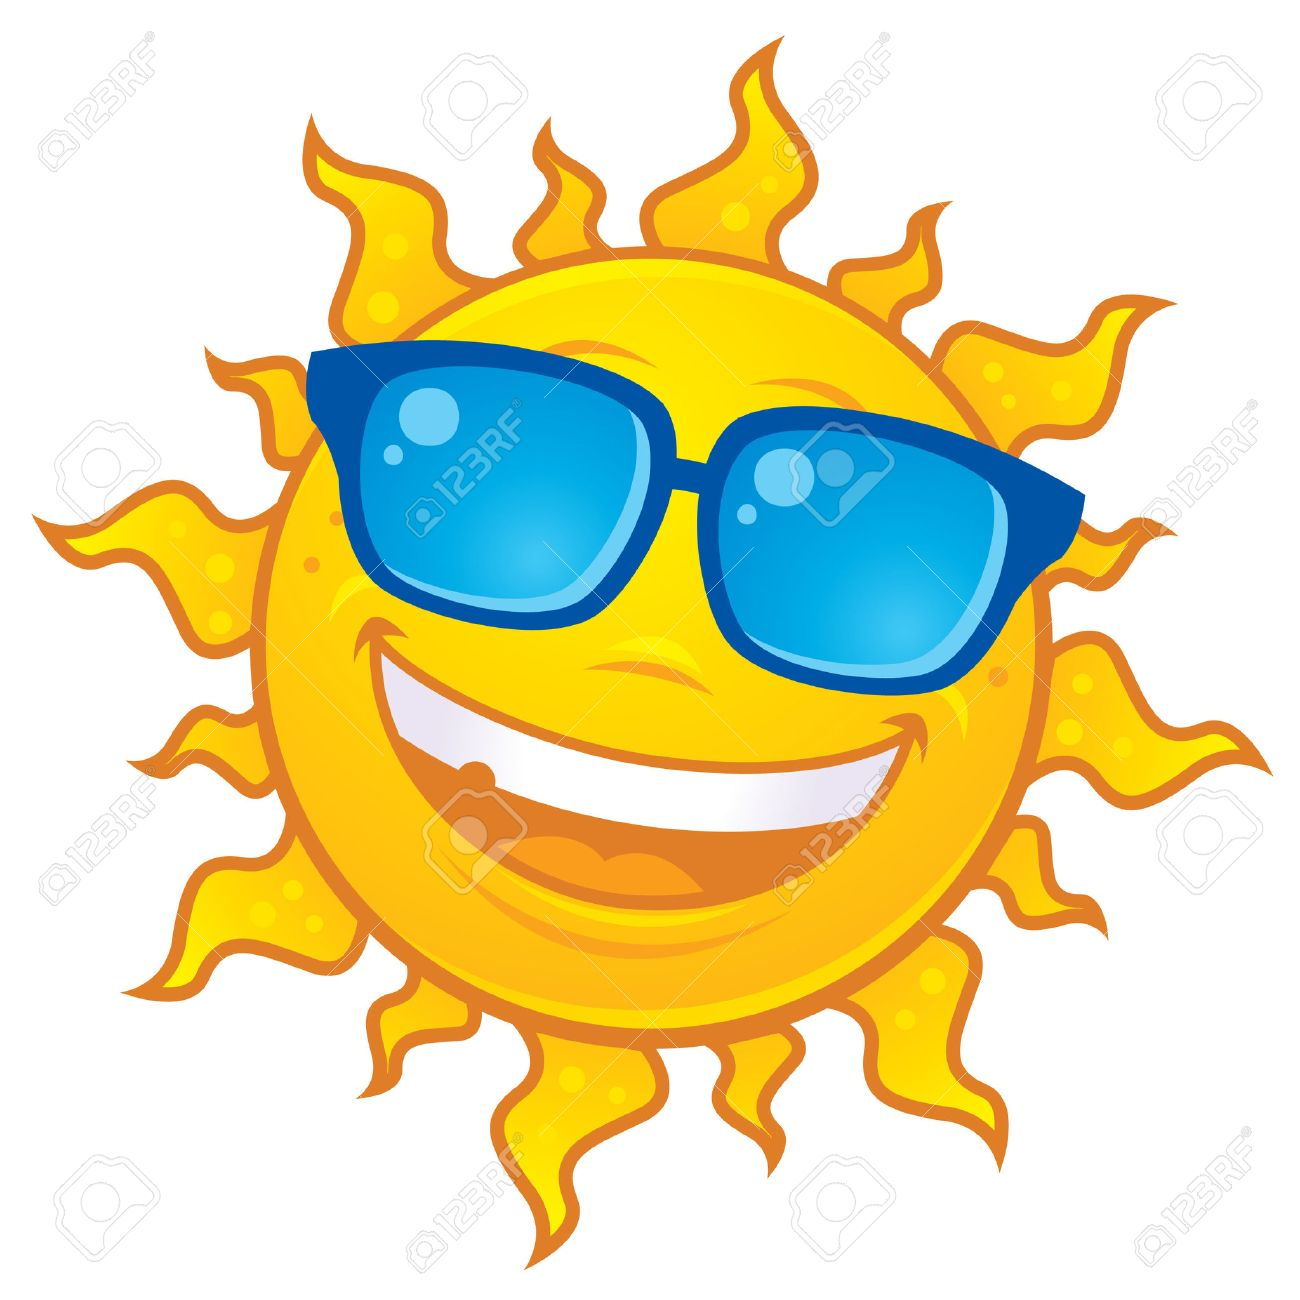 cartoon sun character wearing sunglasses royalty free cliparts rh 123rf com cartoon pictures of the sunshine cartoon images of sunbathing